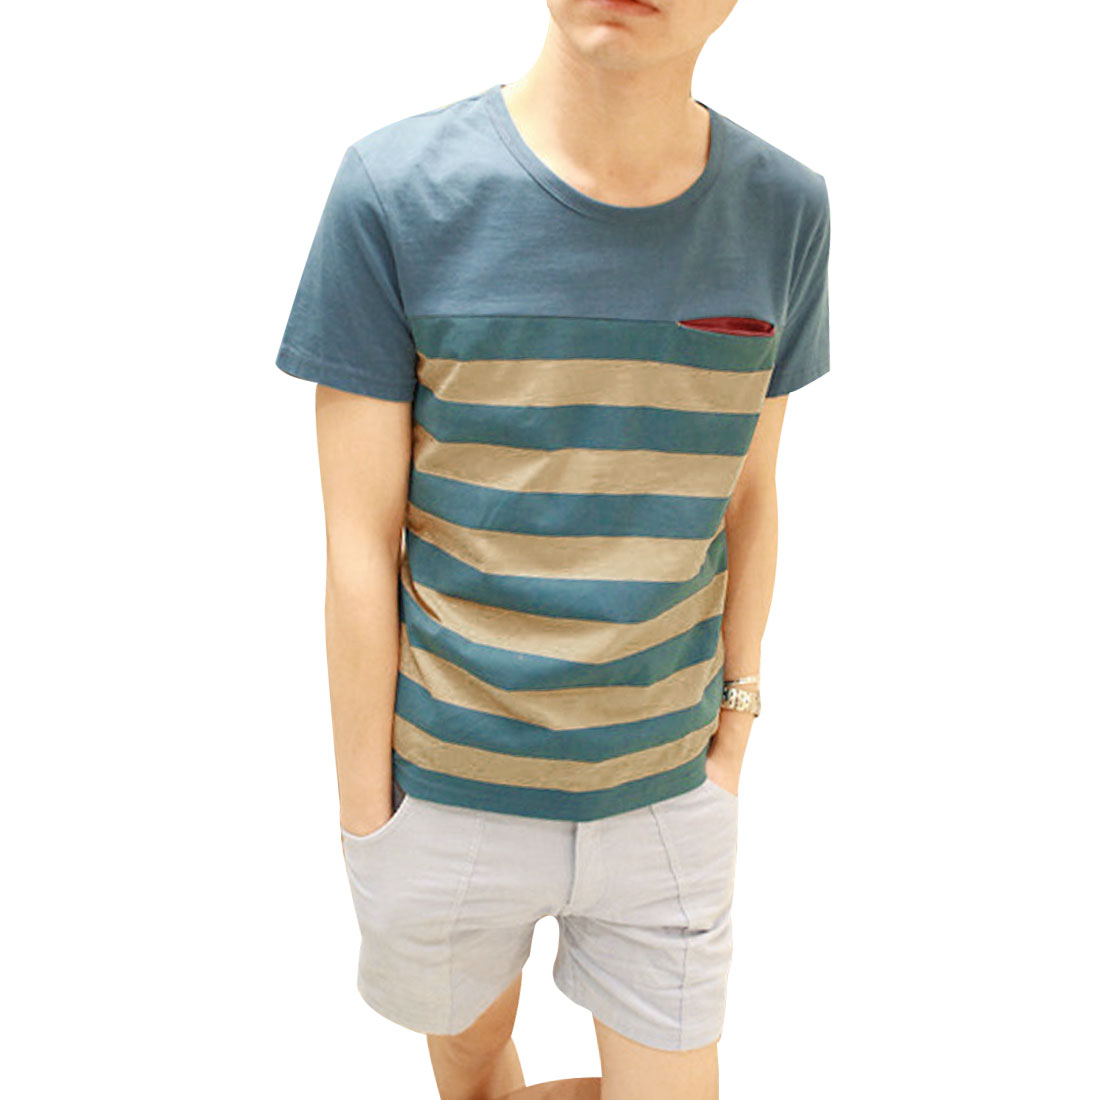 Pullover Round Neck Stripes Print Casual T-Shirt Top Blue Yellow S for Men